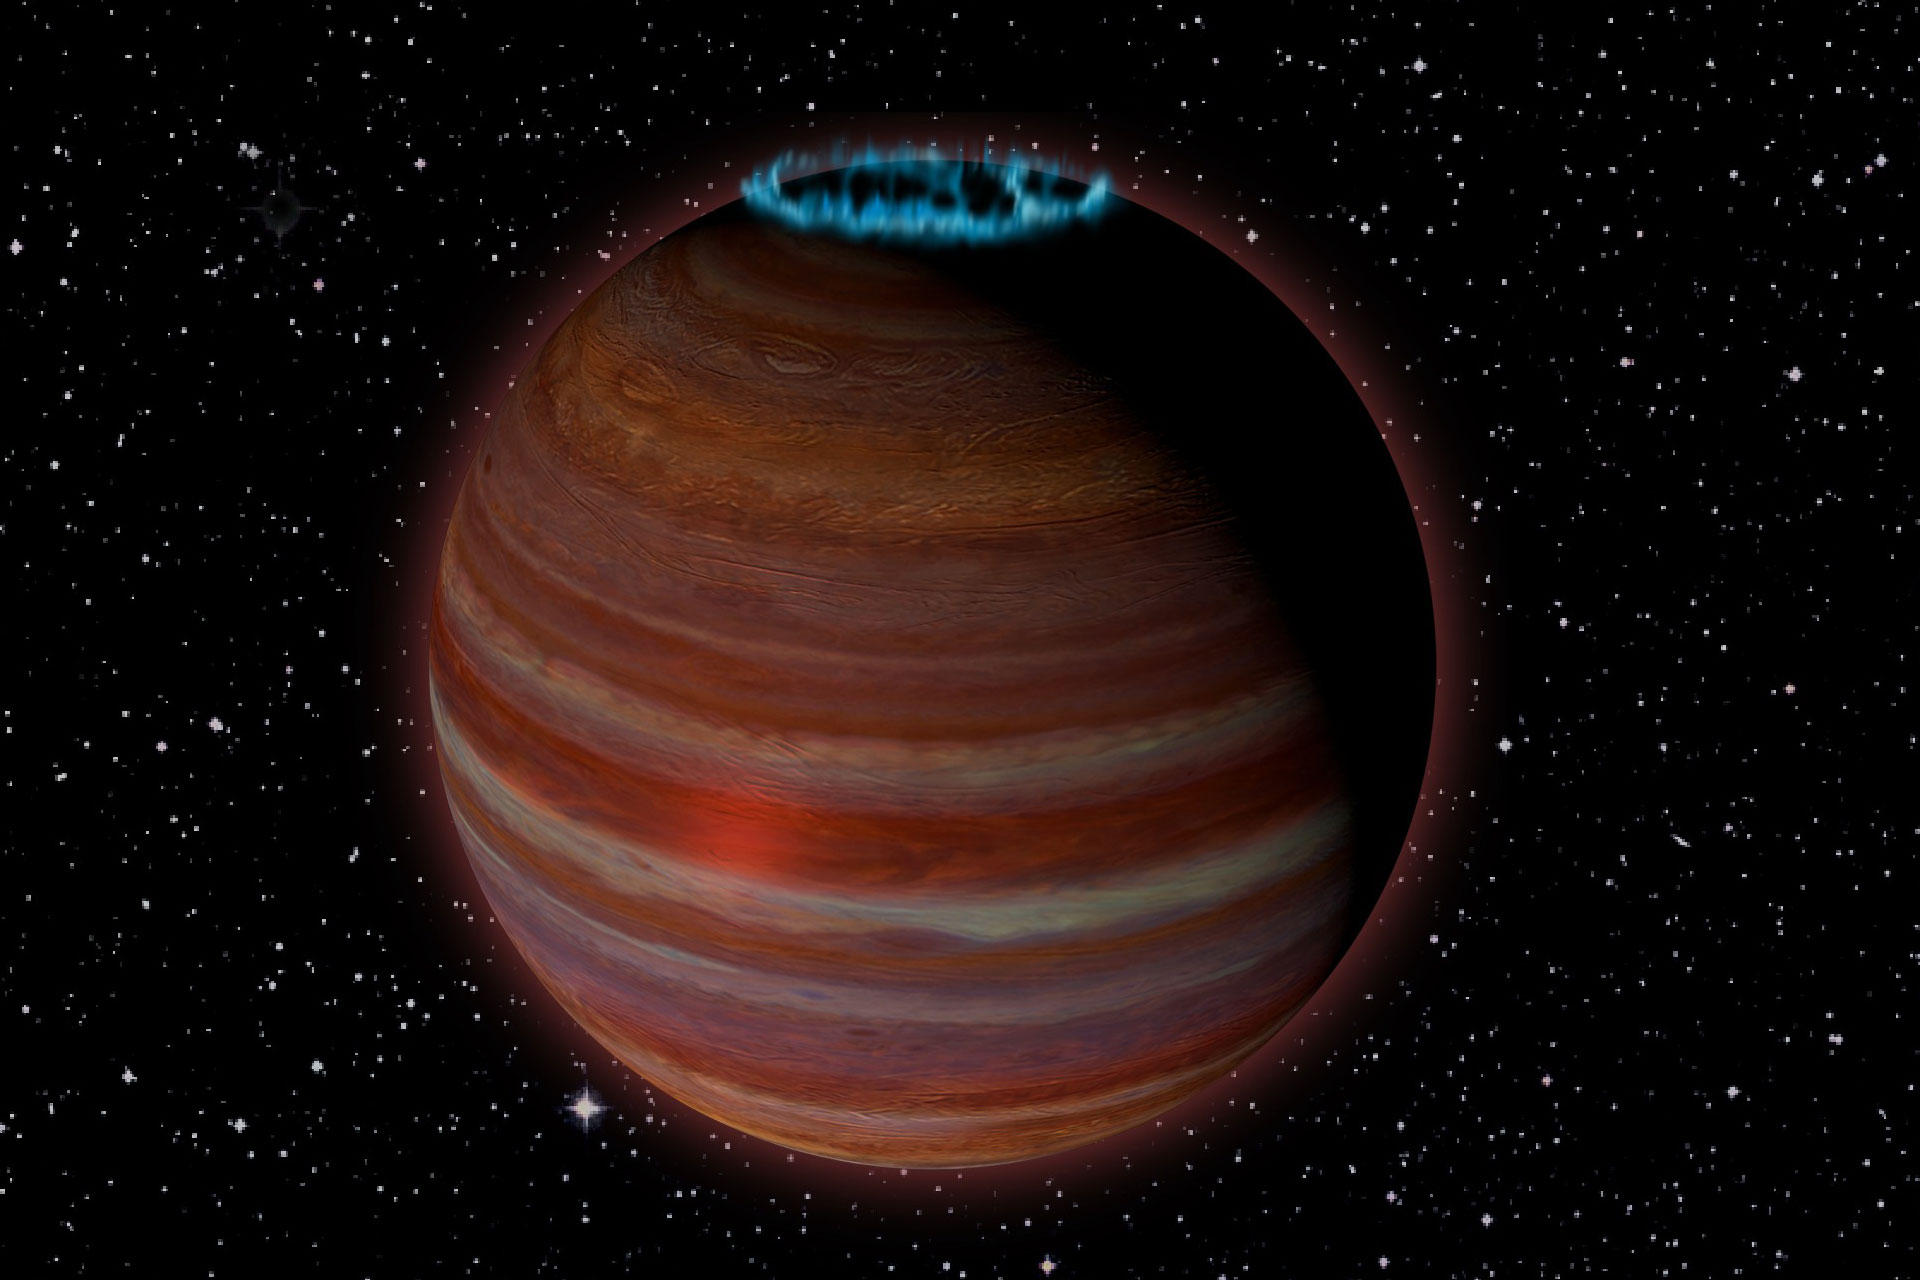 Huge rogue 'planet' has magnetic field scientists can't explain